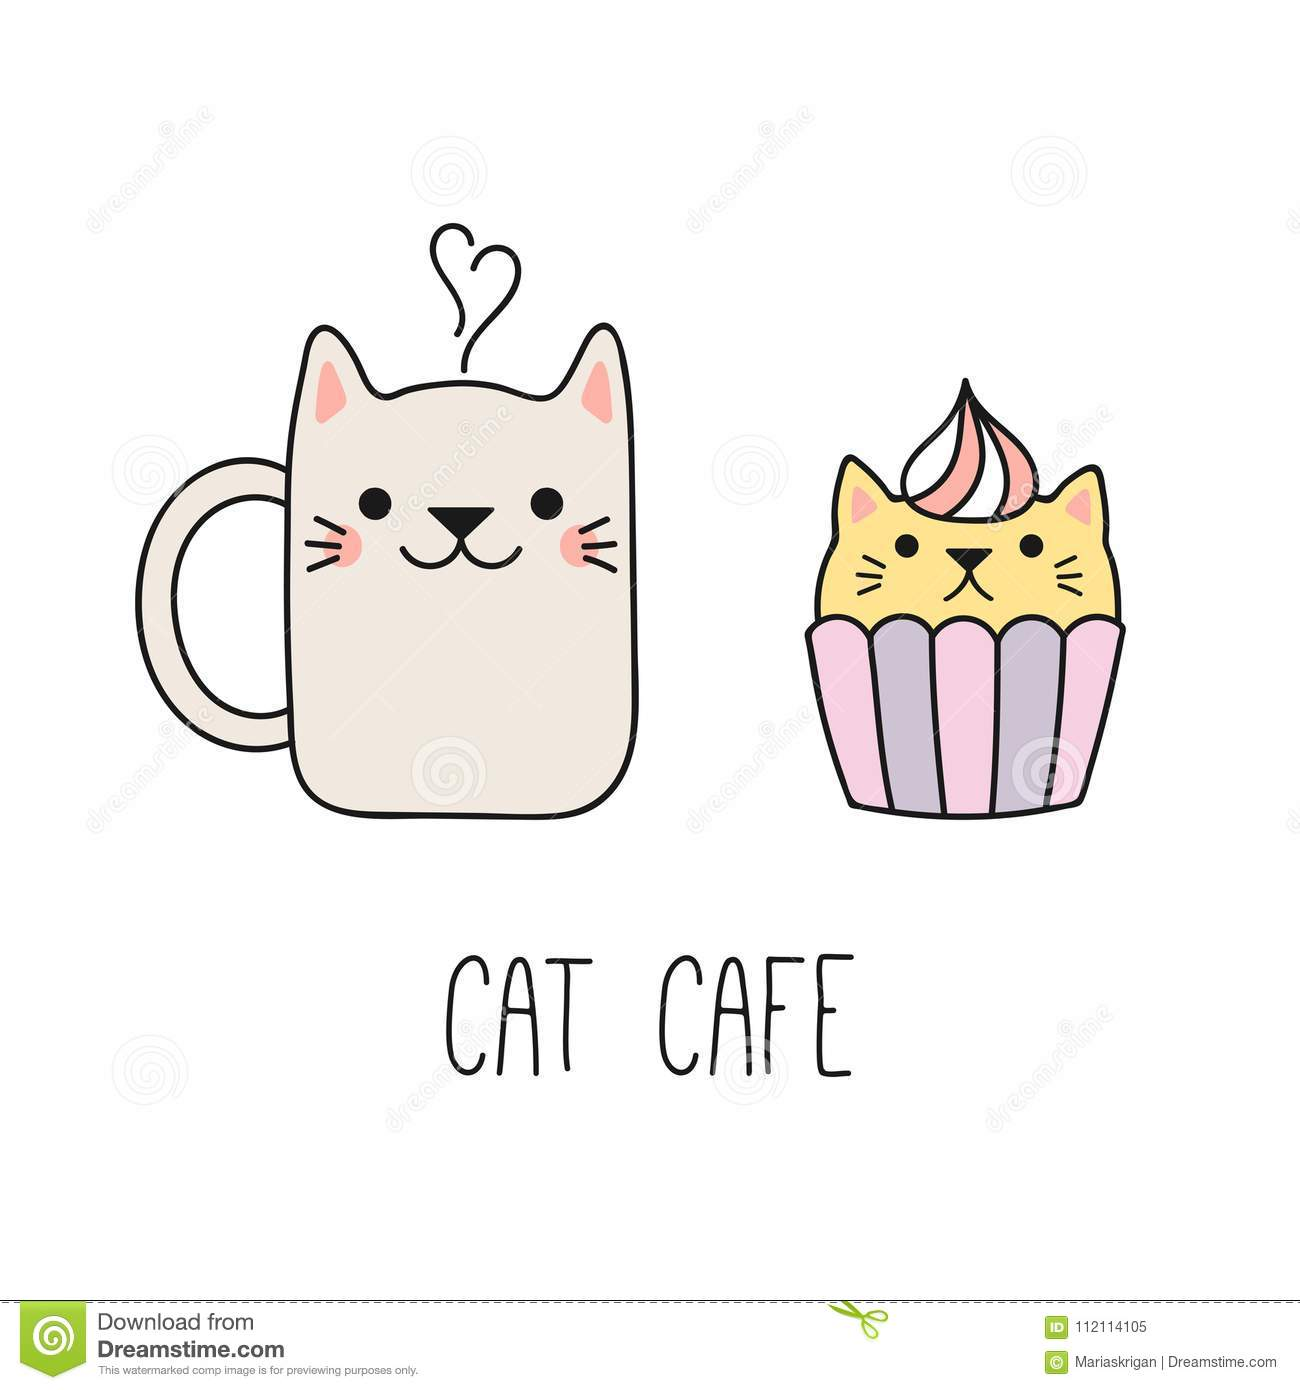 Cute Cat Cafe Illustration Stock Vector Illustration Of Cupcake 112114105